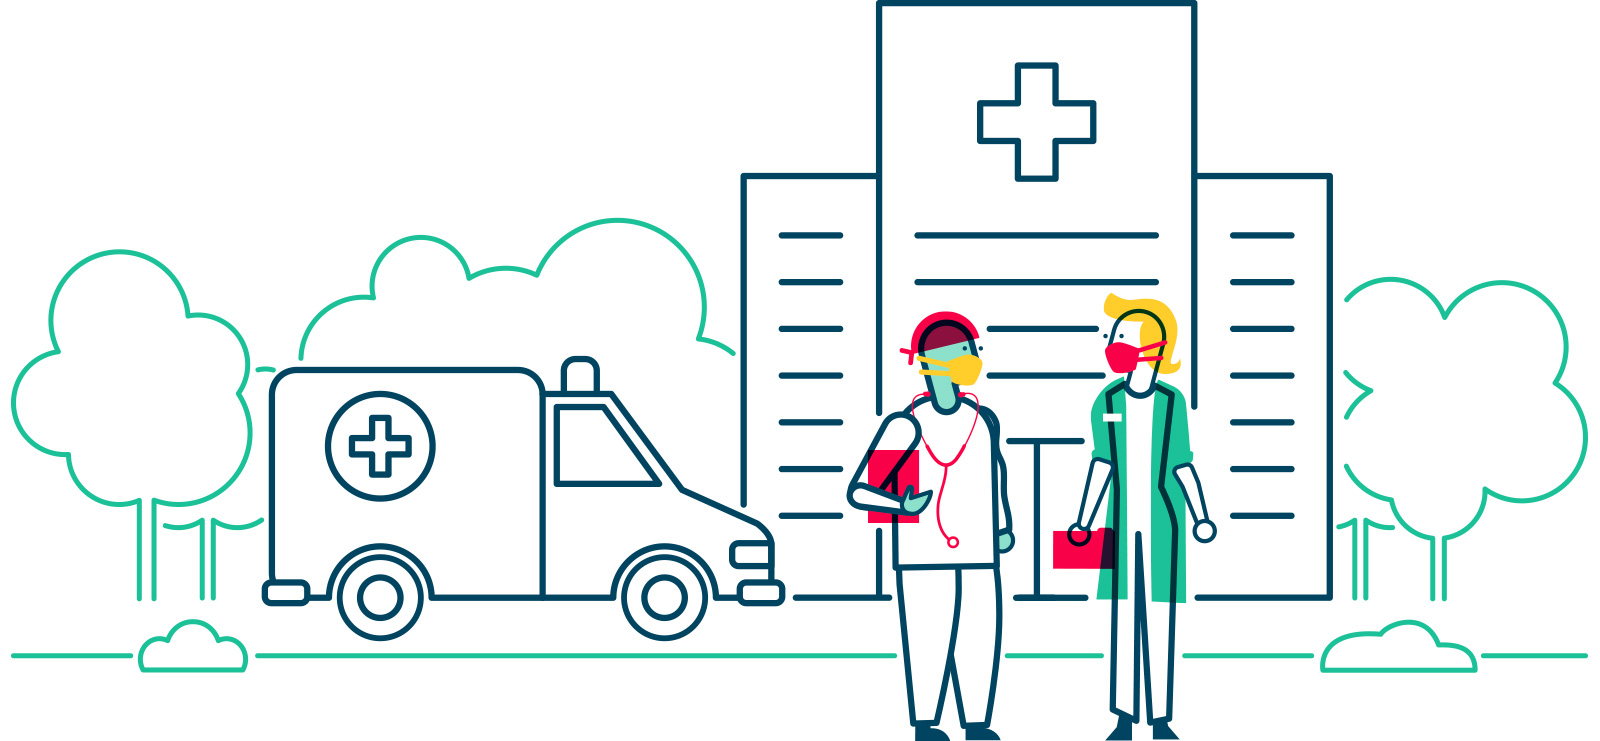 An illustration of two doctors in front of an ambulance and hospital